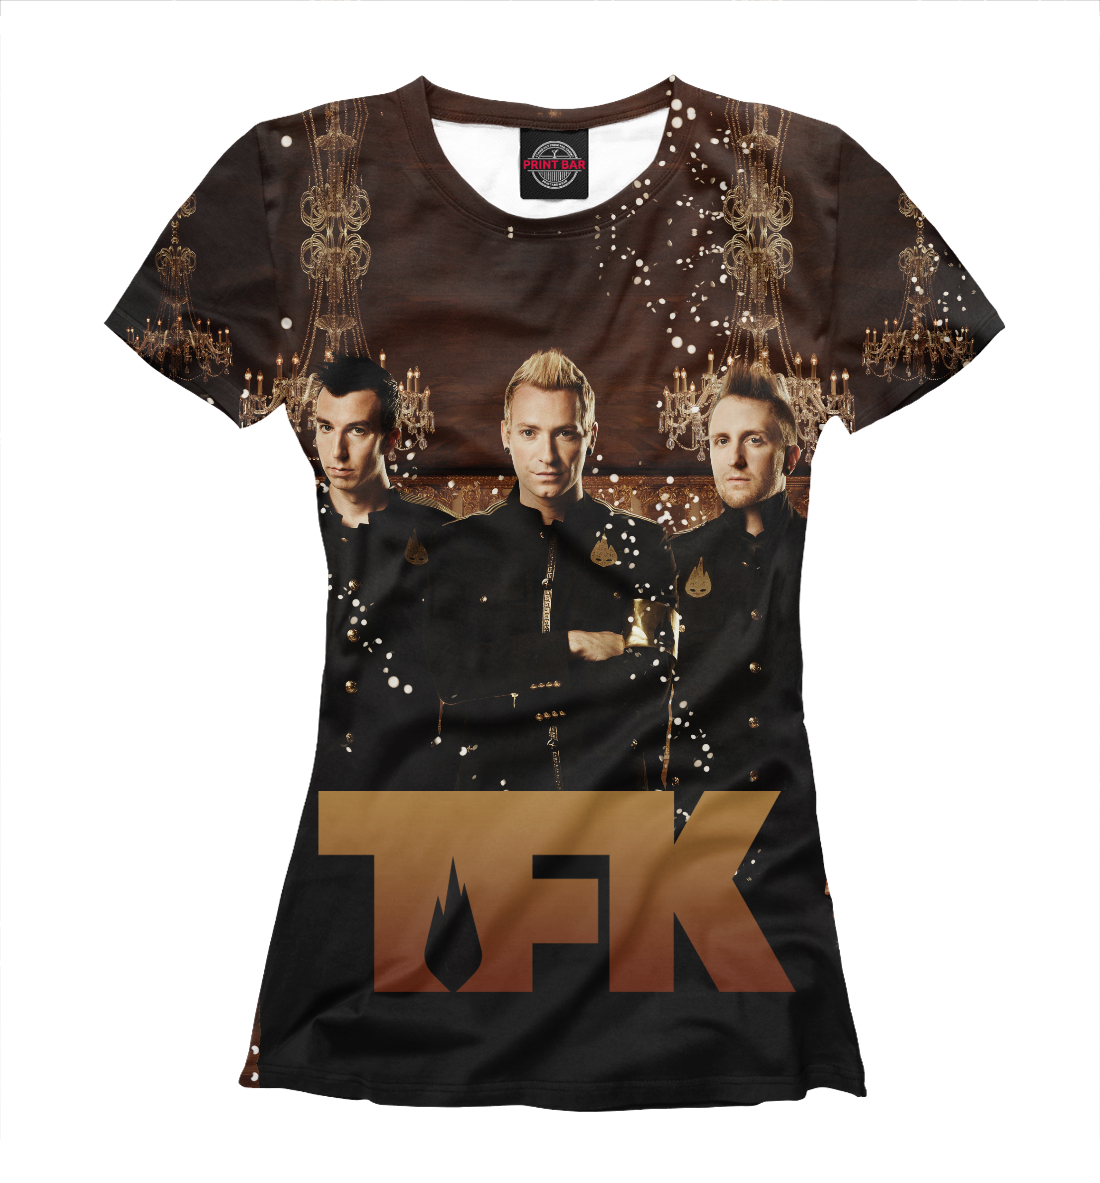 Купить Thousand Foot Krutch, Printbar, Футболки, APD-771584-fut-1